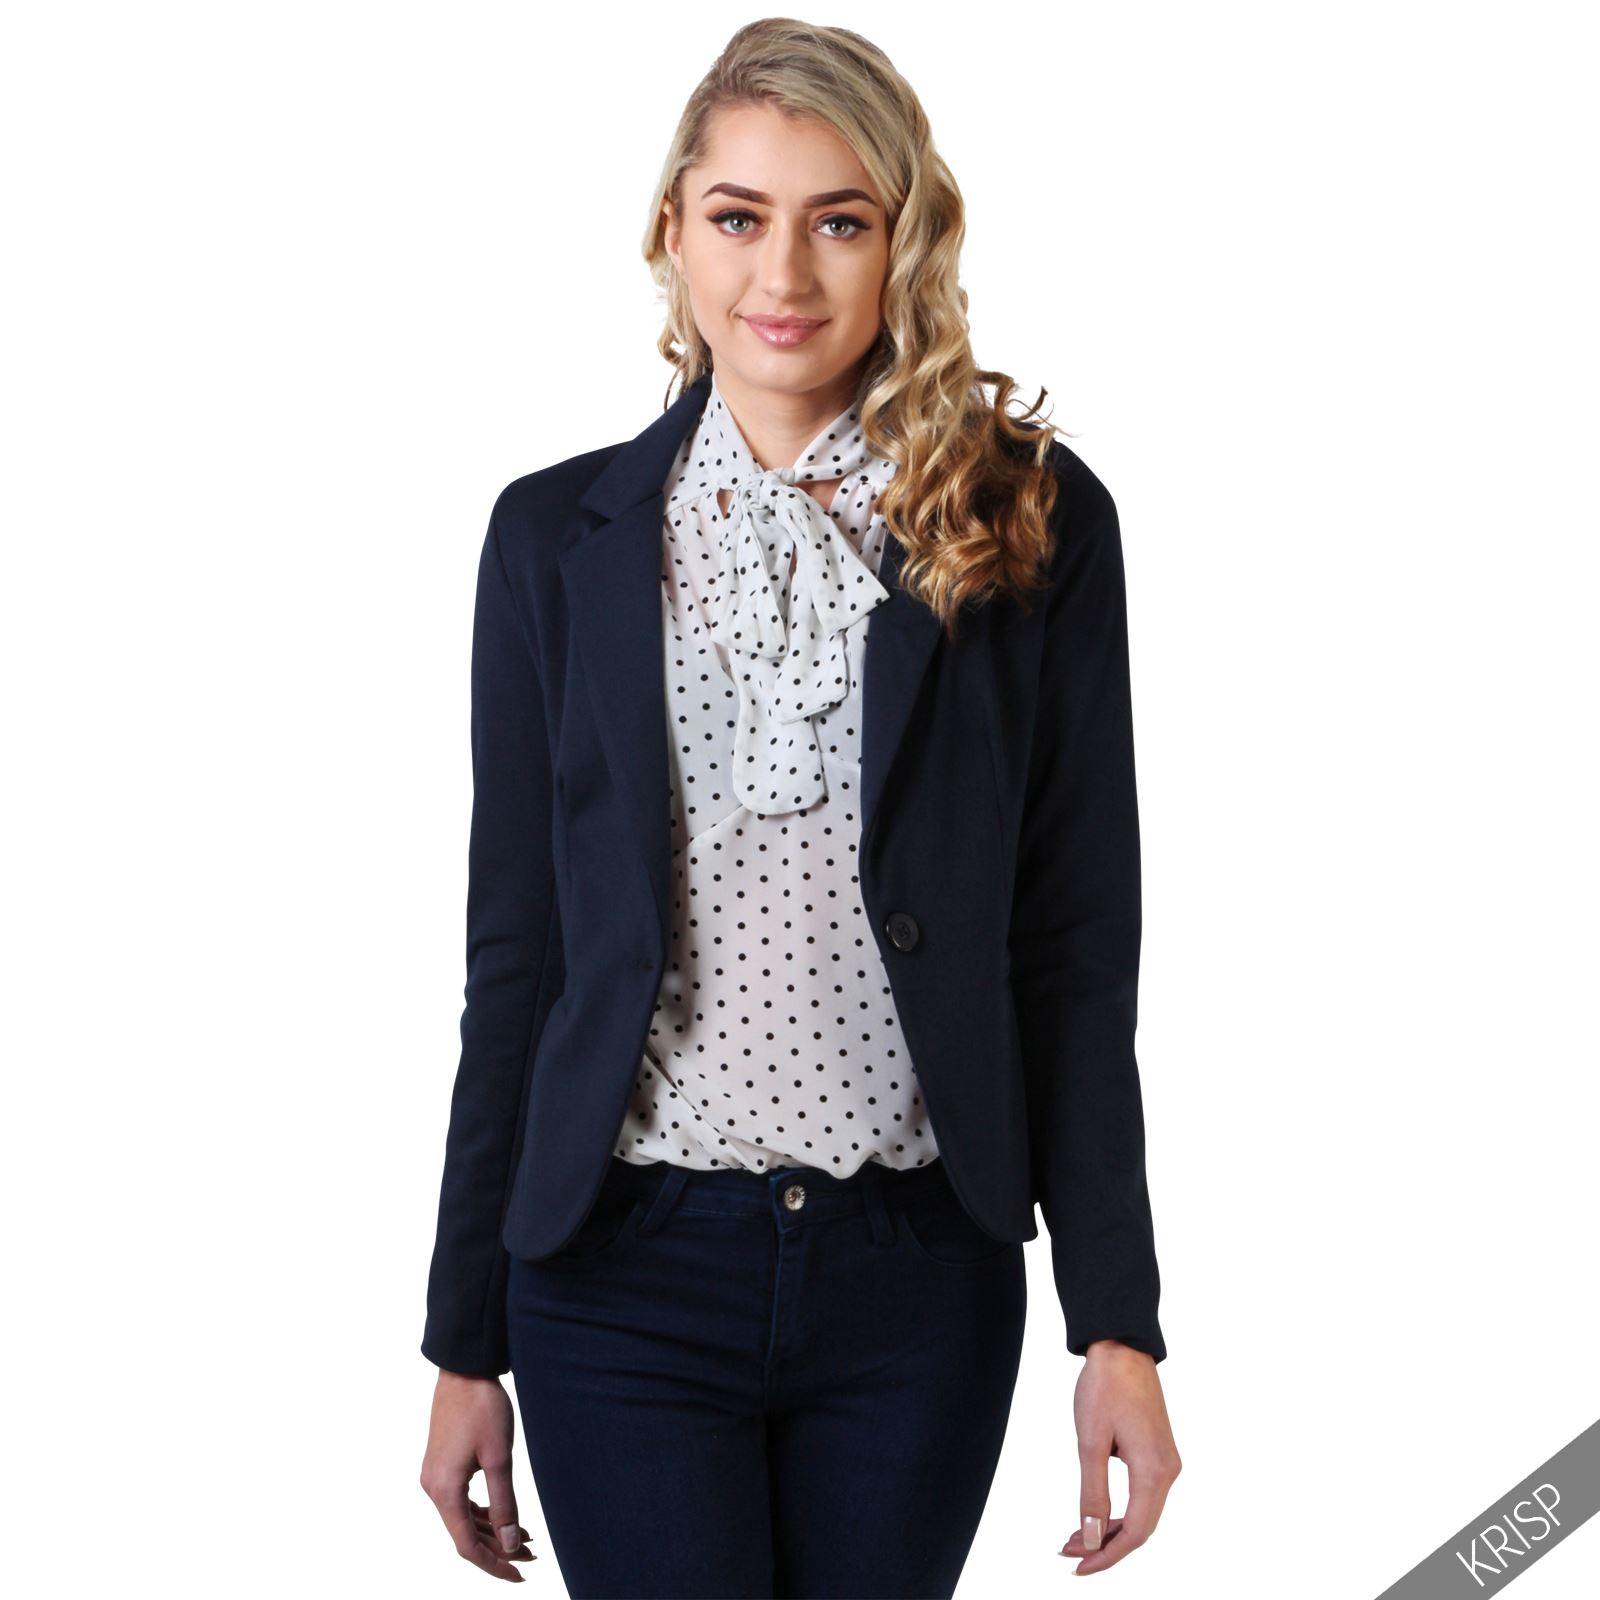 About Sumissura Women's Custom Shirts Founded in , Sumissura is the e-commerce leader in custom suits and custom shirts, as we offer our customers complete freedom to design their own clothes by choosing from a wide range of styles and fabrics.